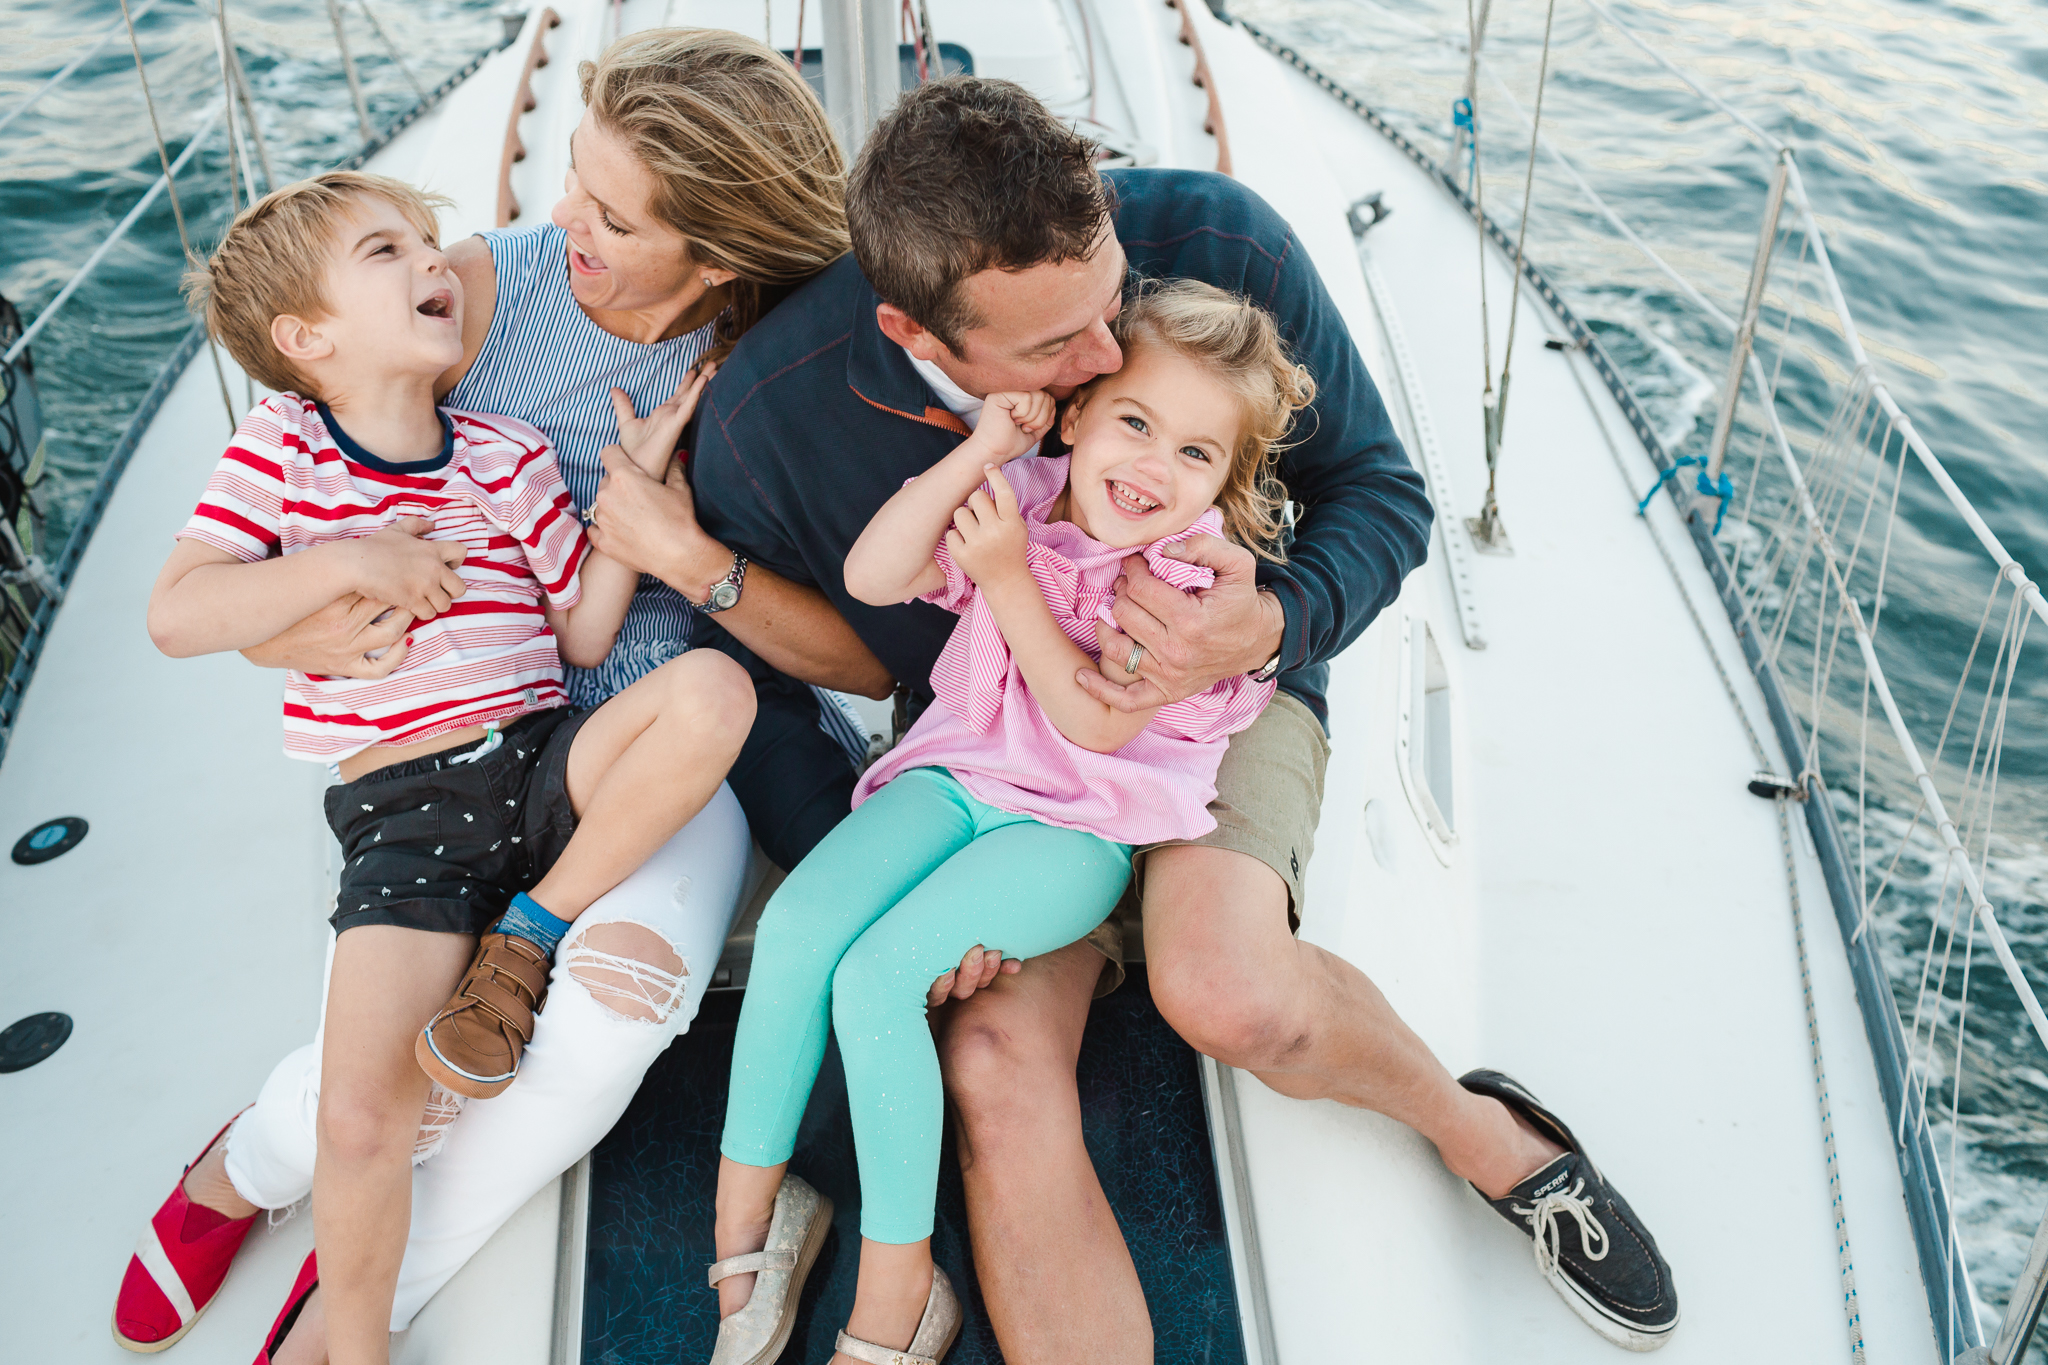 San-Diego-Photographer-Family-on-a-sailboat-WS-19.jpg